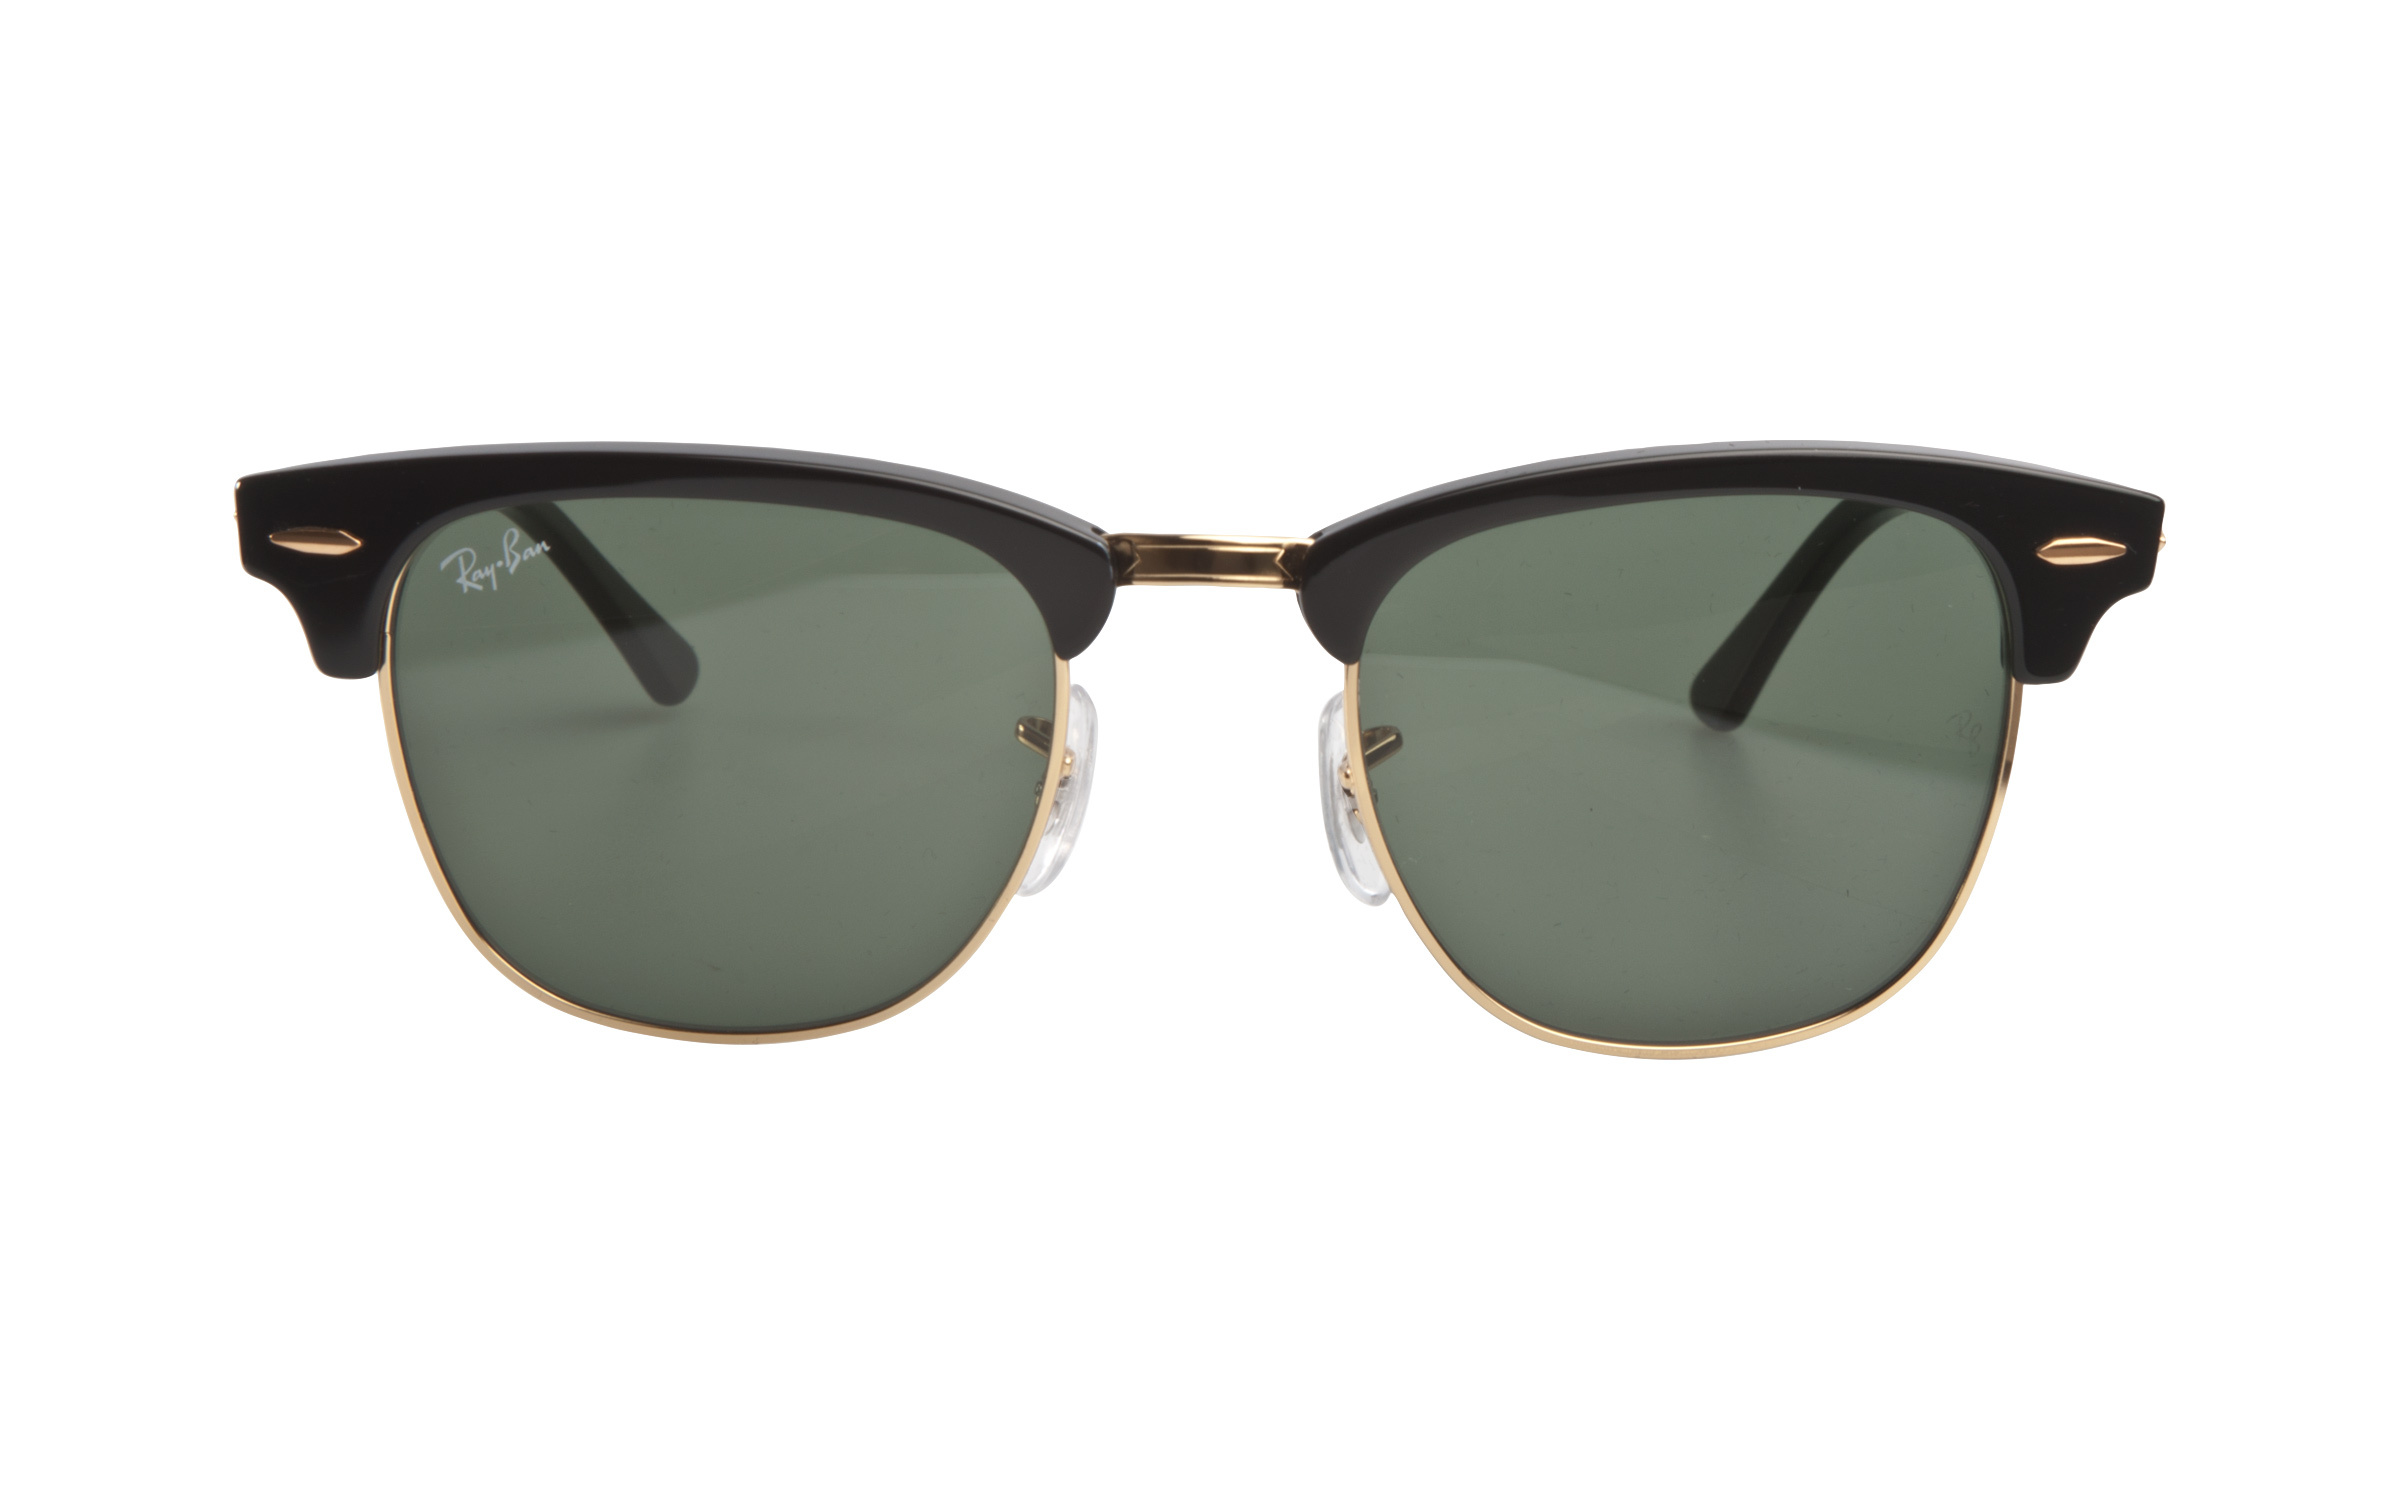 gold ray bans  Shop for Ray-Ban sunglasses online with friendly service and a ...